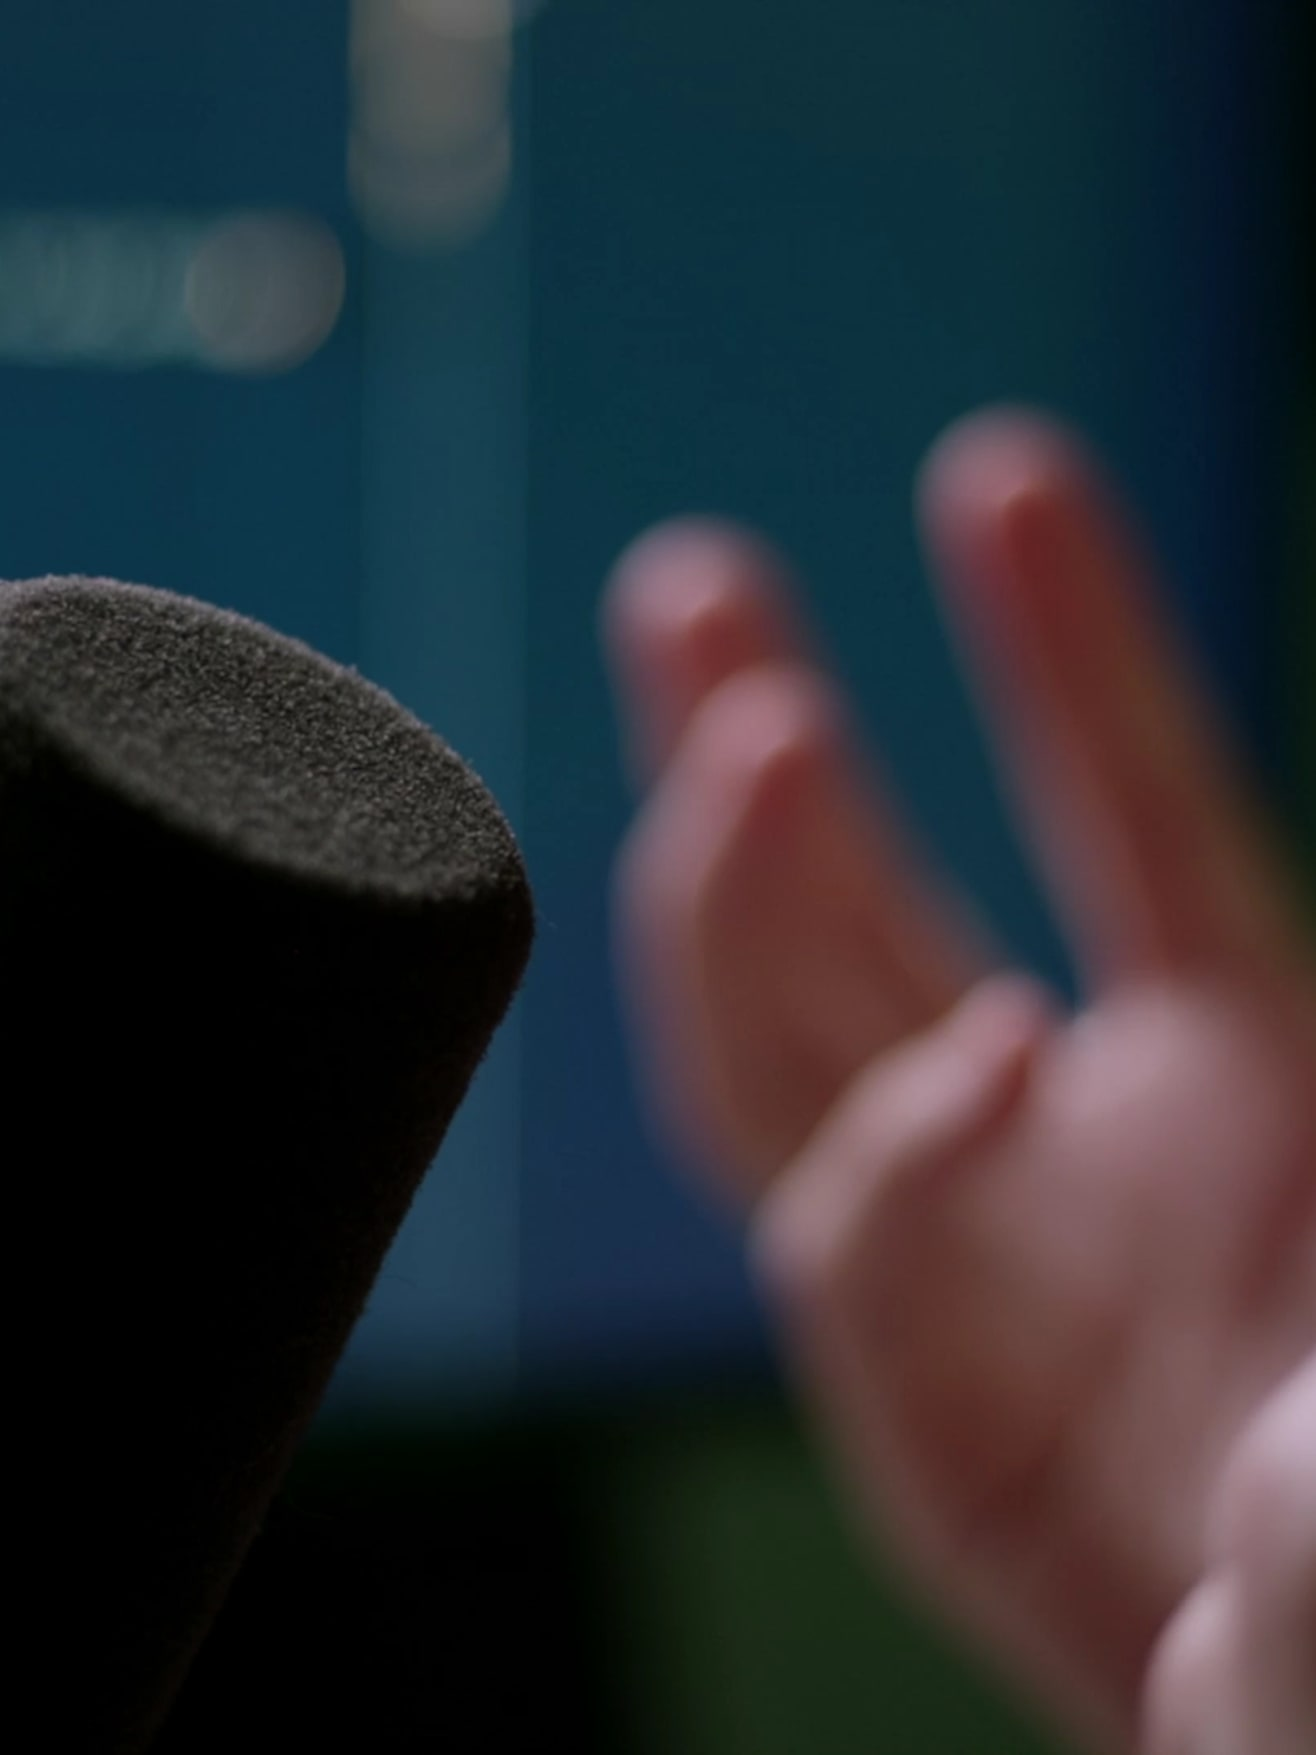 A microphone and hands